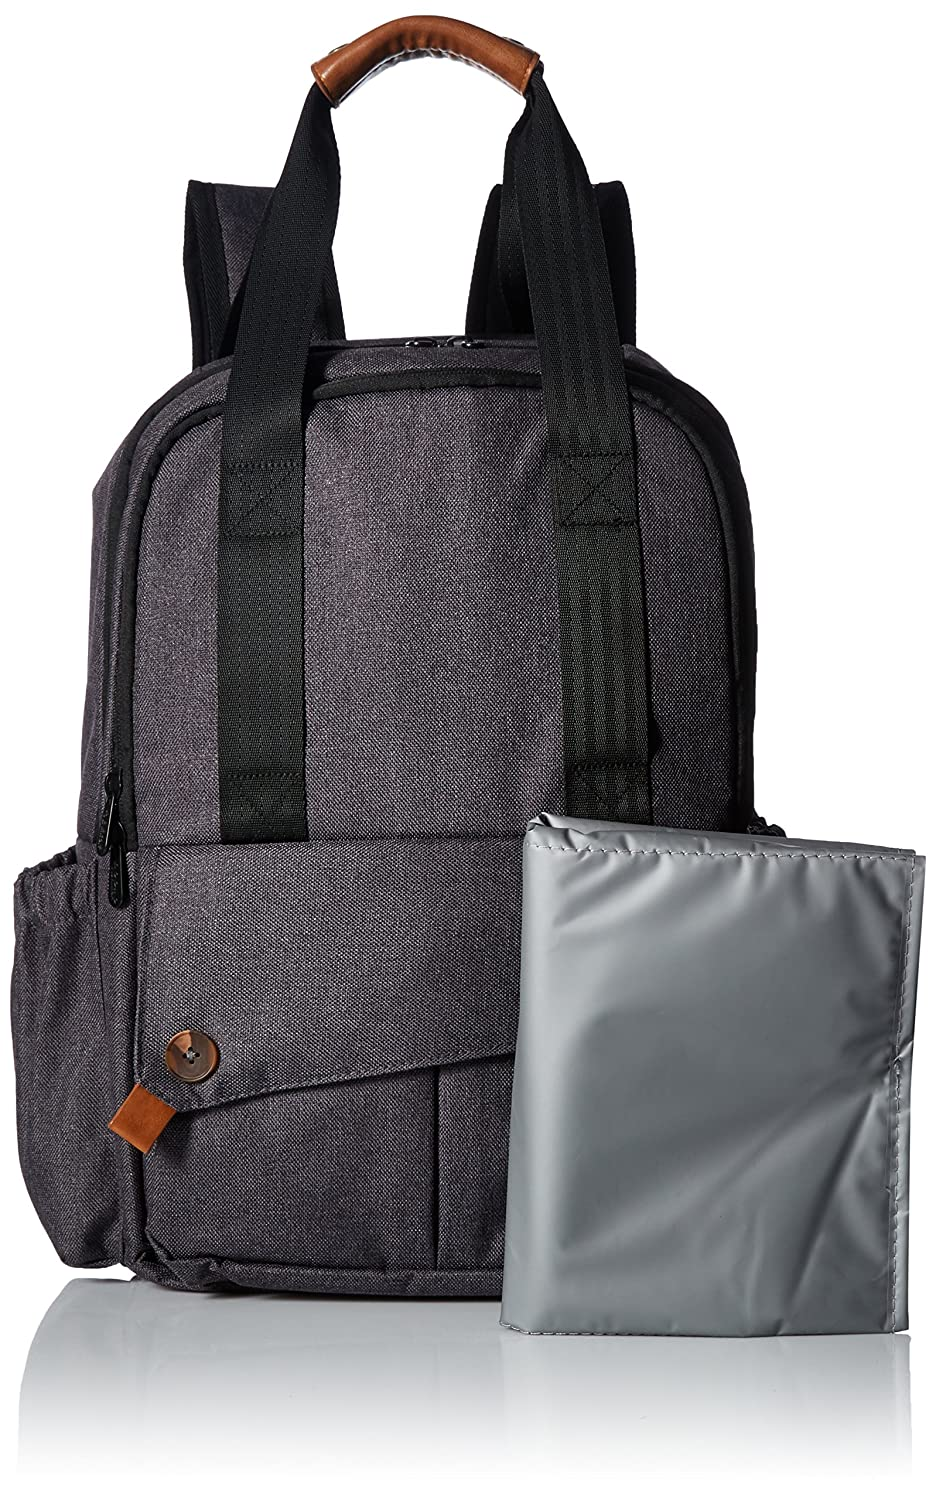 Top 5 Best Diaper Bags for Dads Reviews in 2020 5